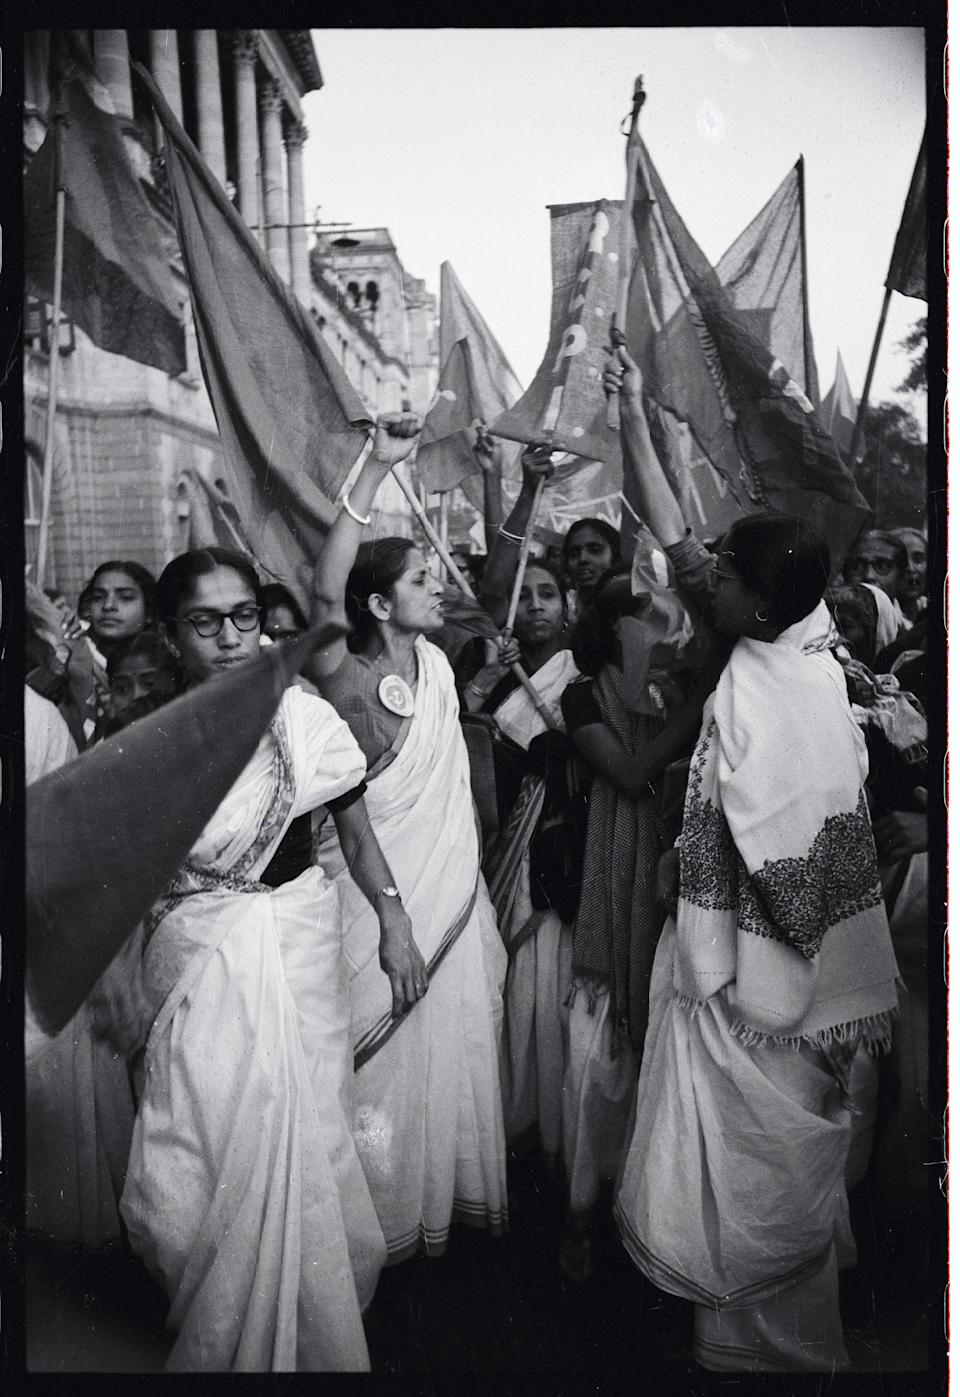 (Original Caption) Flag-carrying, hand-waving, enthusiastic women shout anti-government slogans during a United Front women's Day Demonstration here recently. More than 500 of the active ladies in Calcutta and an equal number in other West Bengal State Districts were arrested for defying the existing ban on public assembly anywhere in the states. The woman in the center wears a button sporting a hammer and sickle, symbol of the Soviet Union.